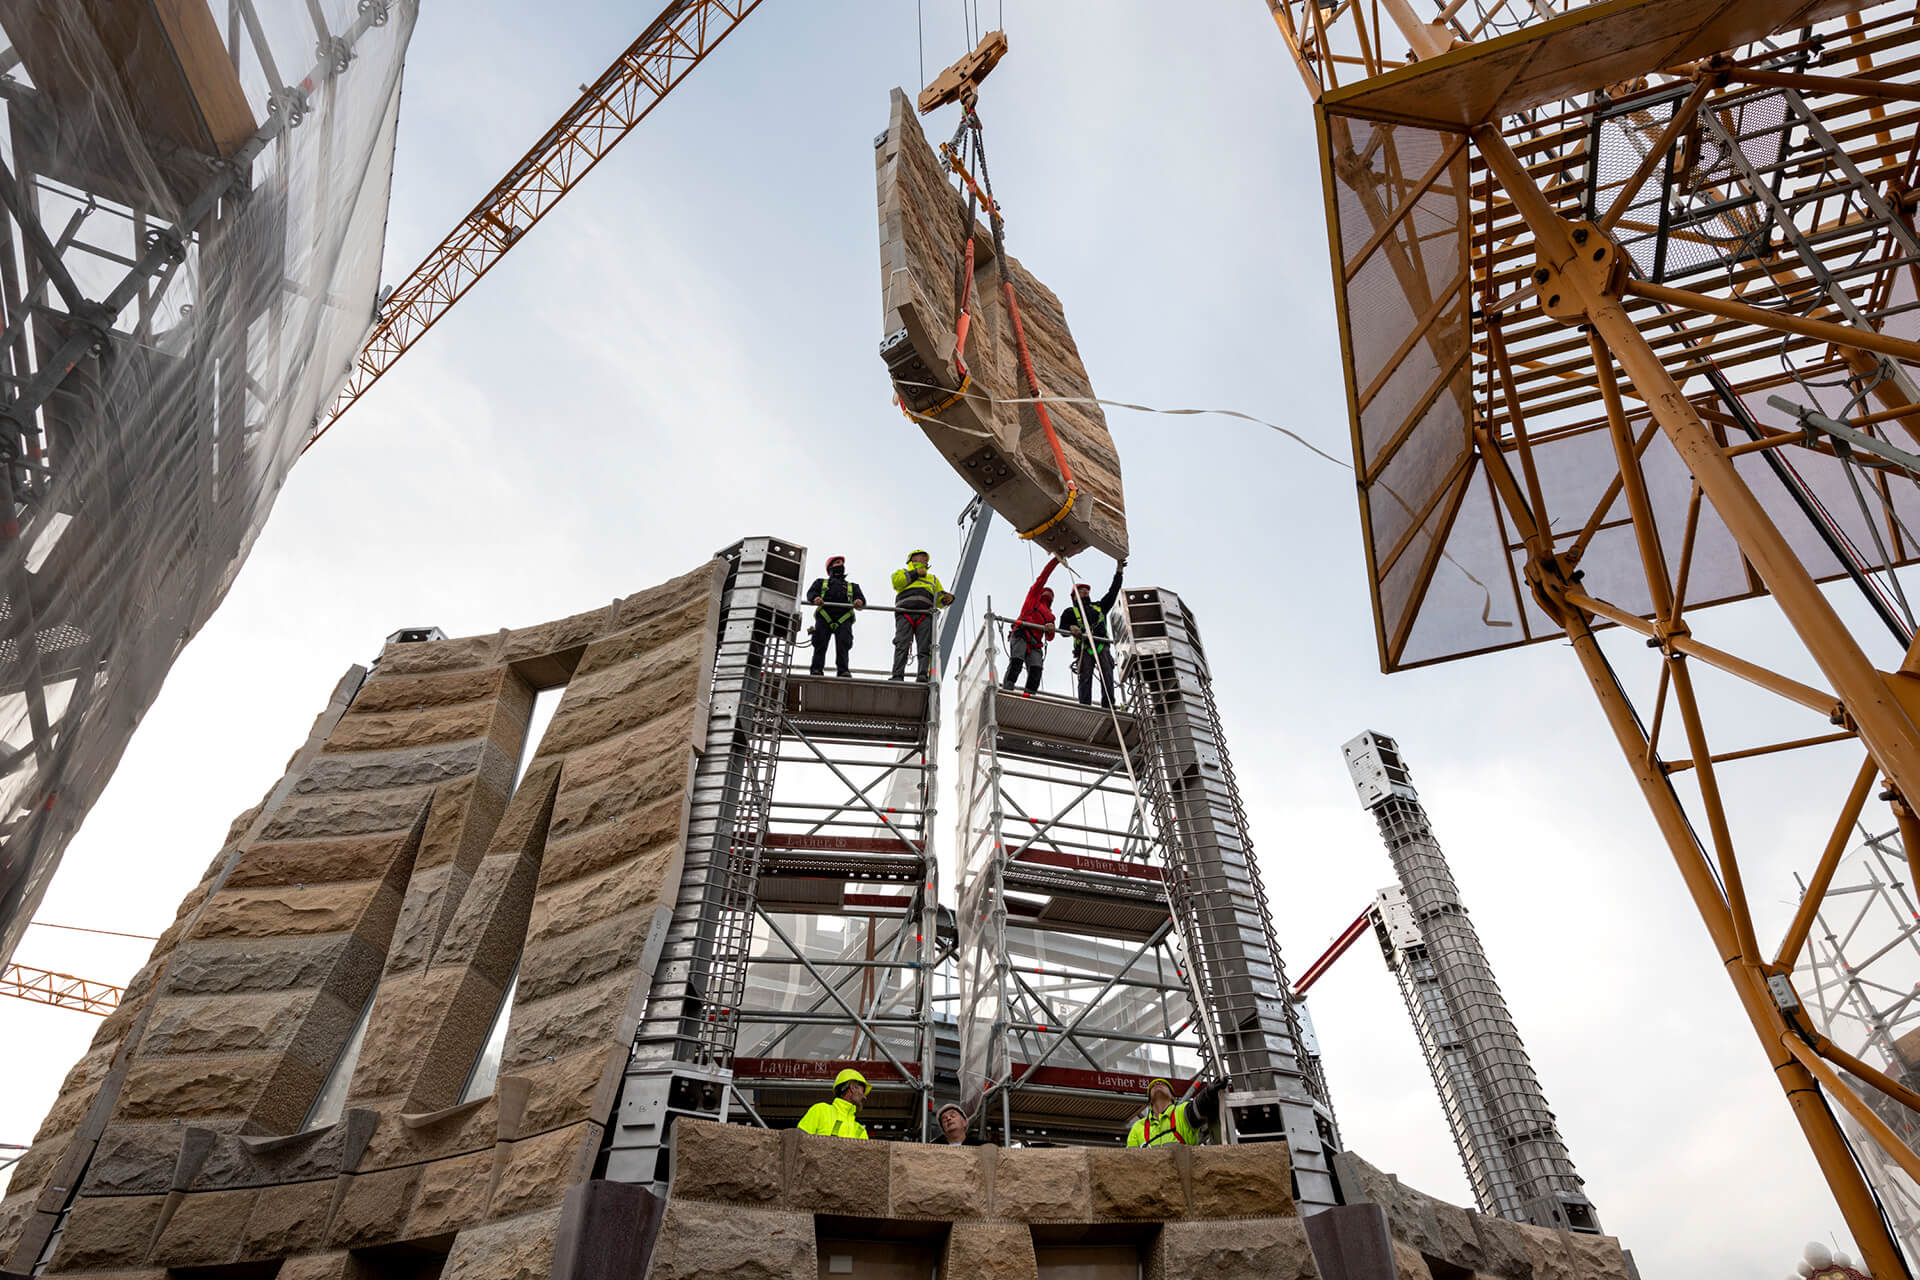 Mechanism of putting the stone slabs in place | Sagrada Família | Barcelona | STIRworld